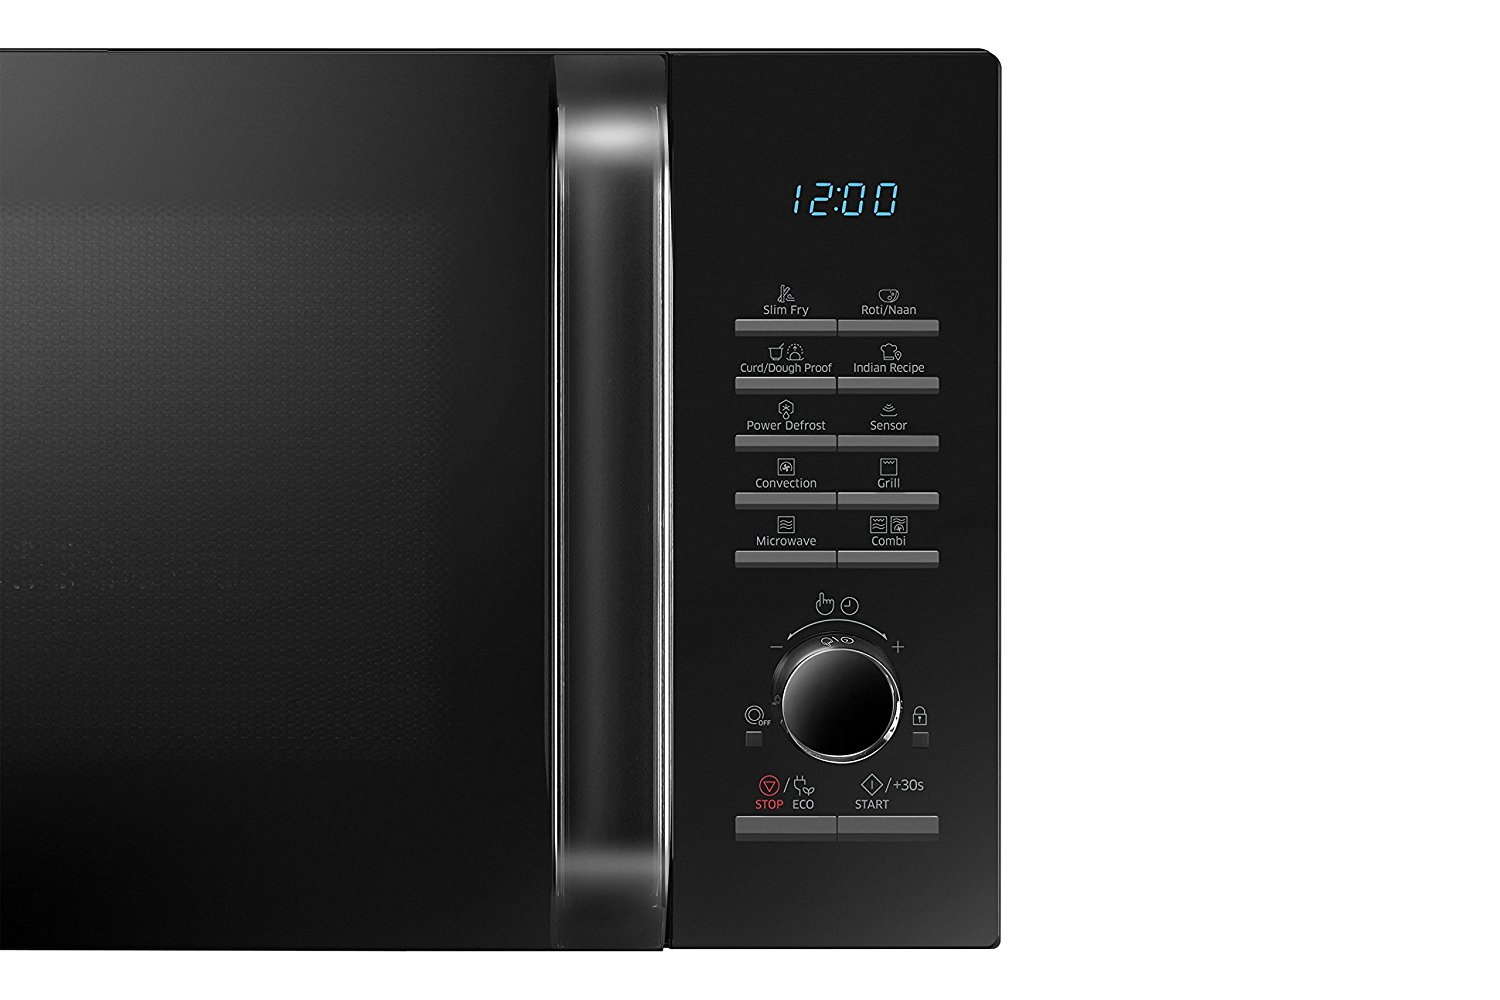 Convection Oven Samsung